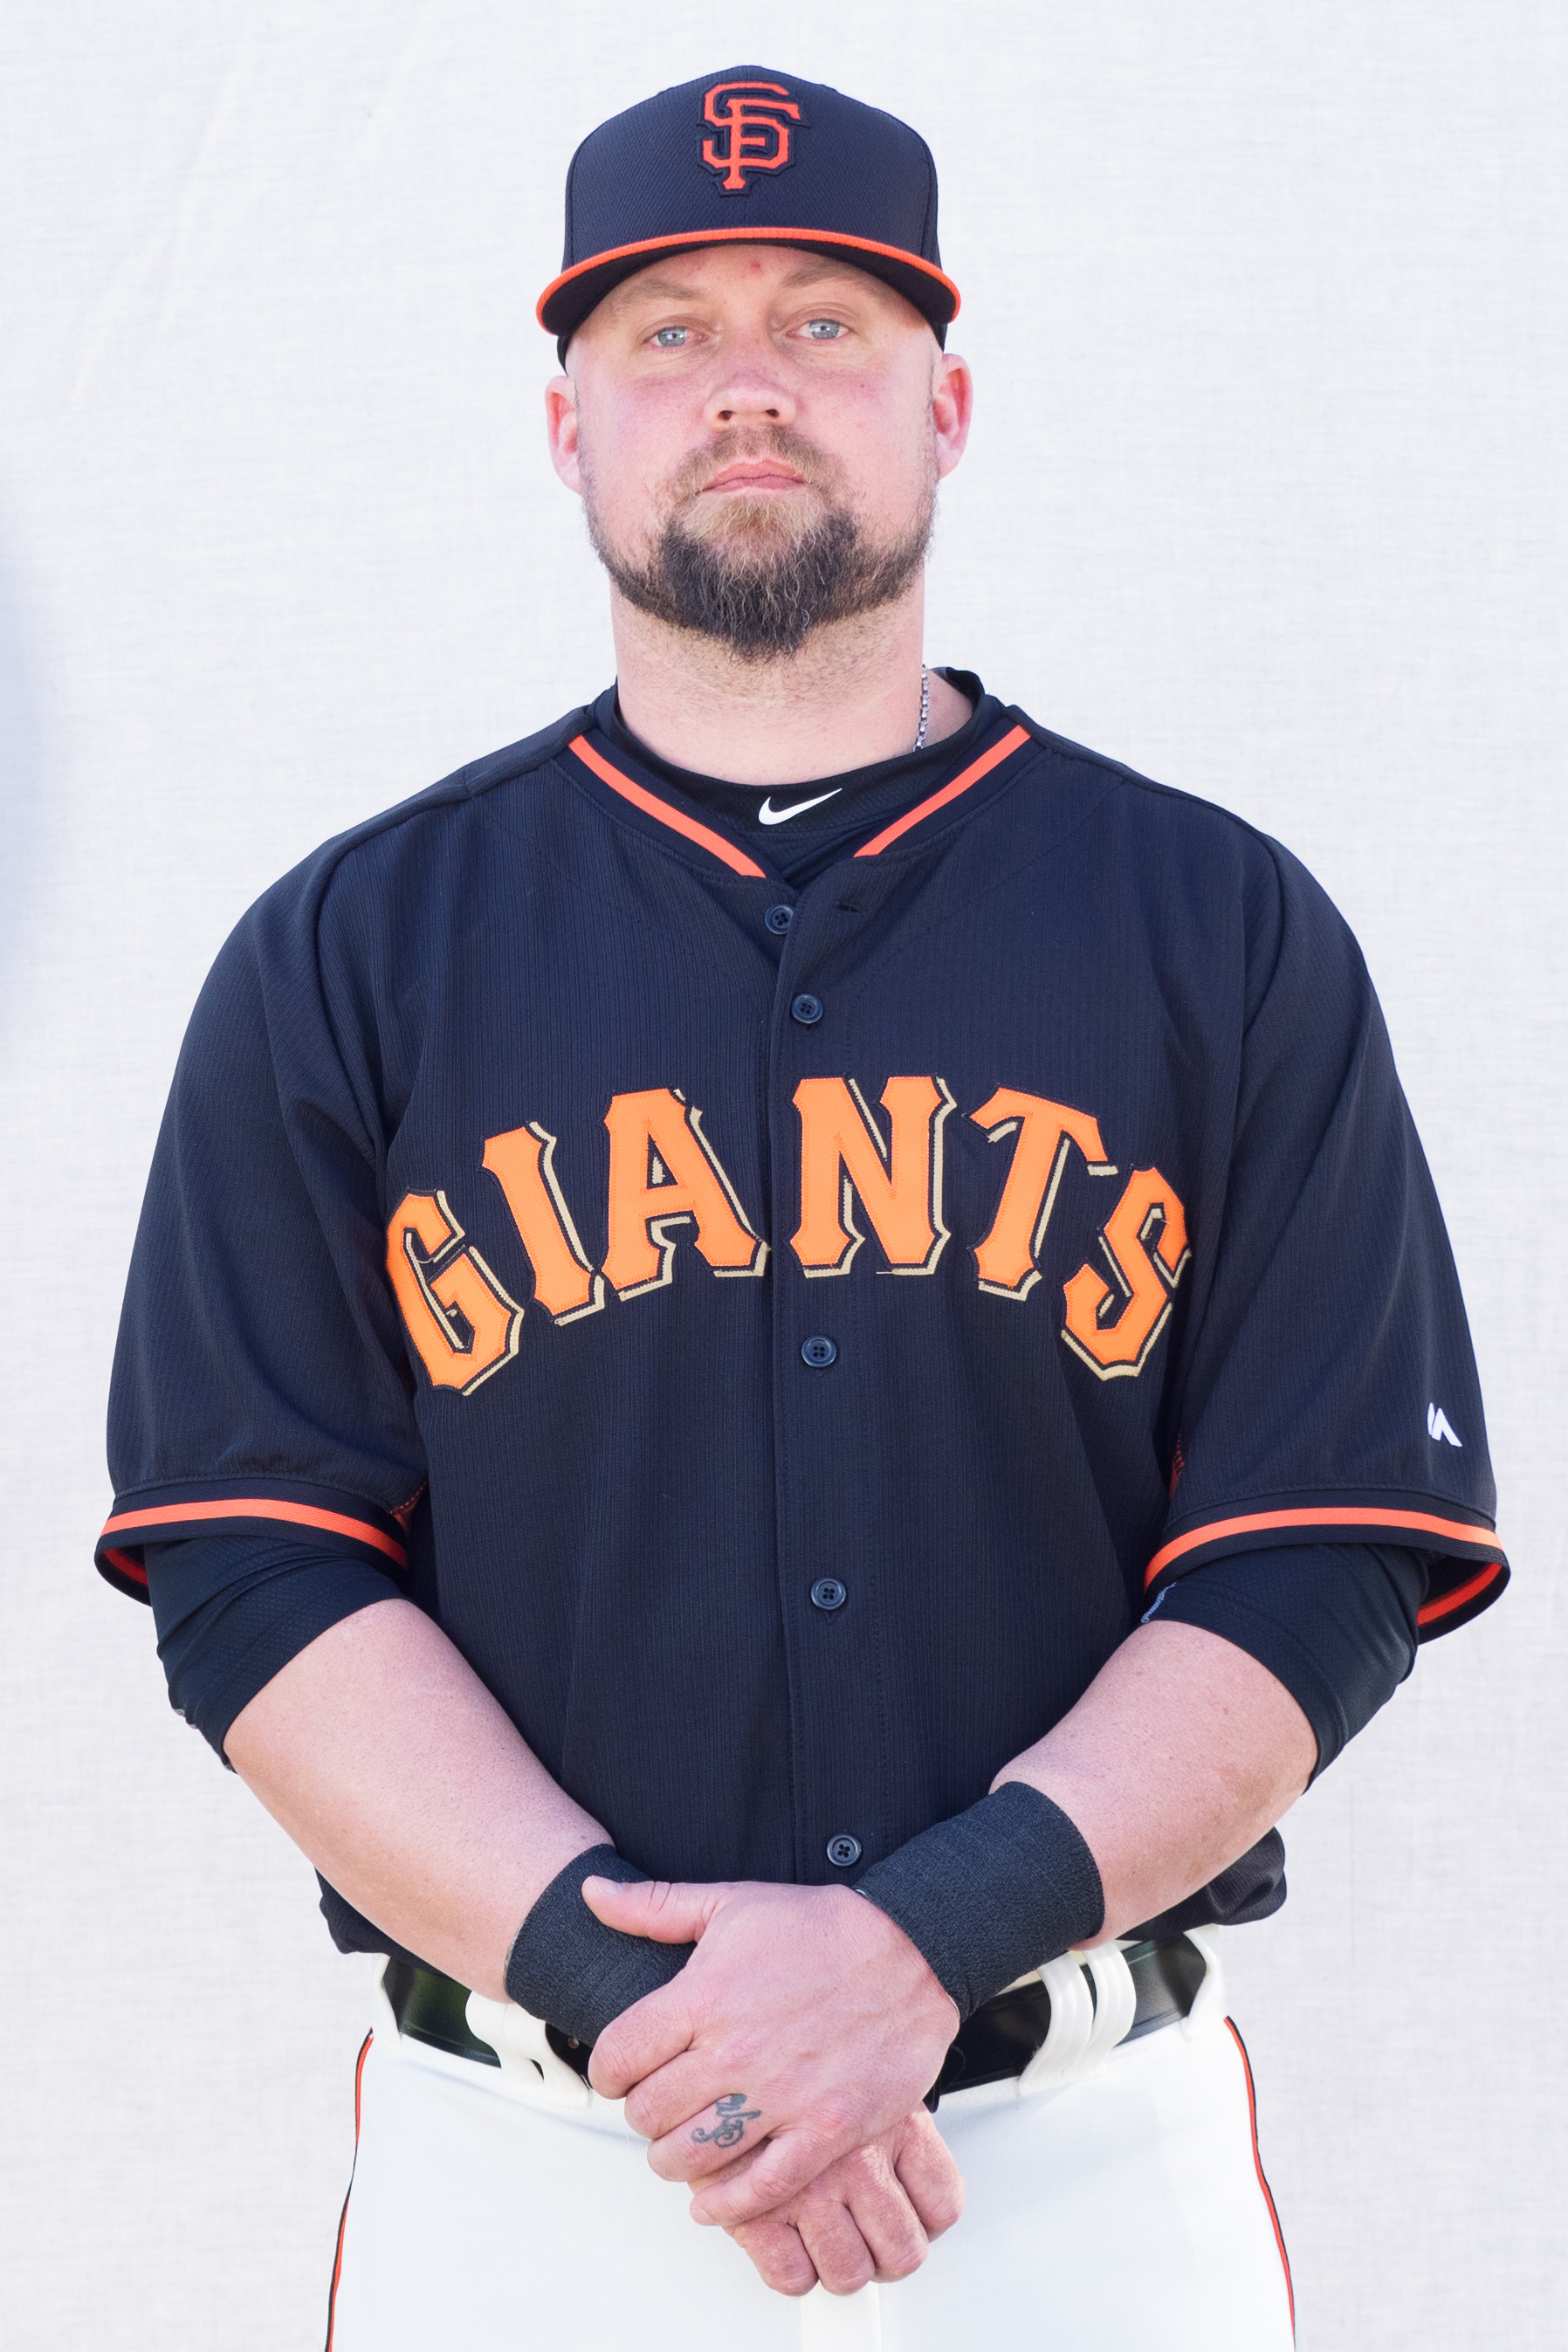 One of the many images I ignored yesterday when listing the best of Giants Photo Day